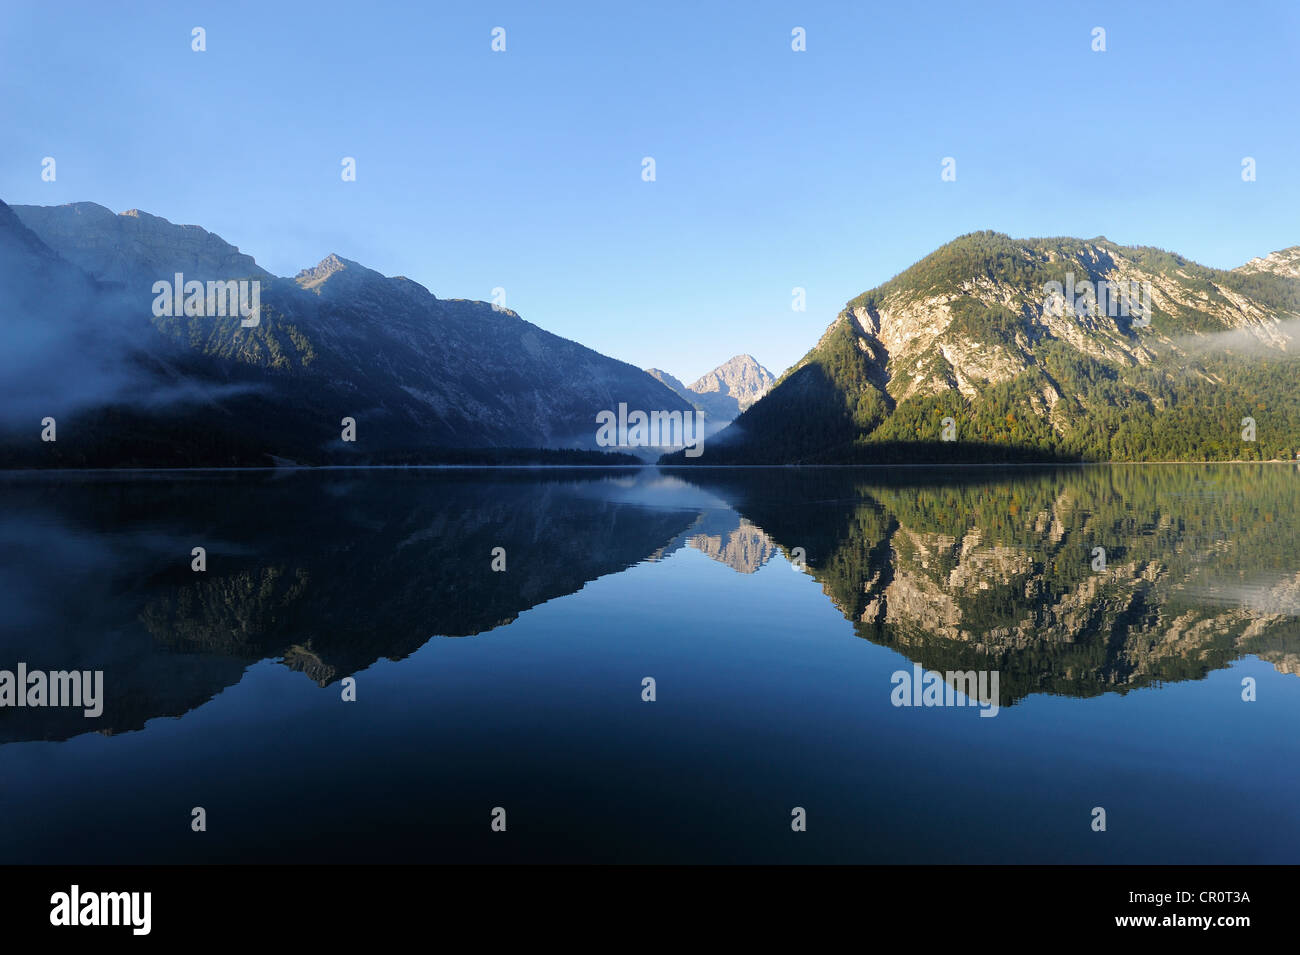 Plansee Lake, Ammergau Alps, Ammergebirge Mountains, looking towards Thaneller Mountain in the Lechtal Alps, Tyrol, - Stock Image